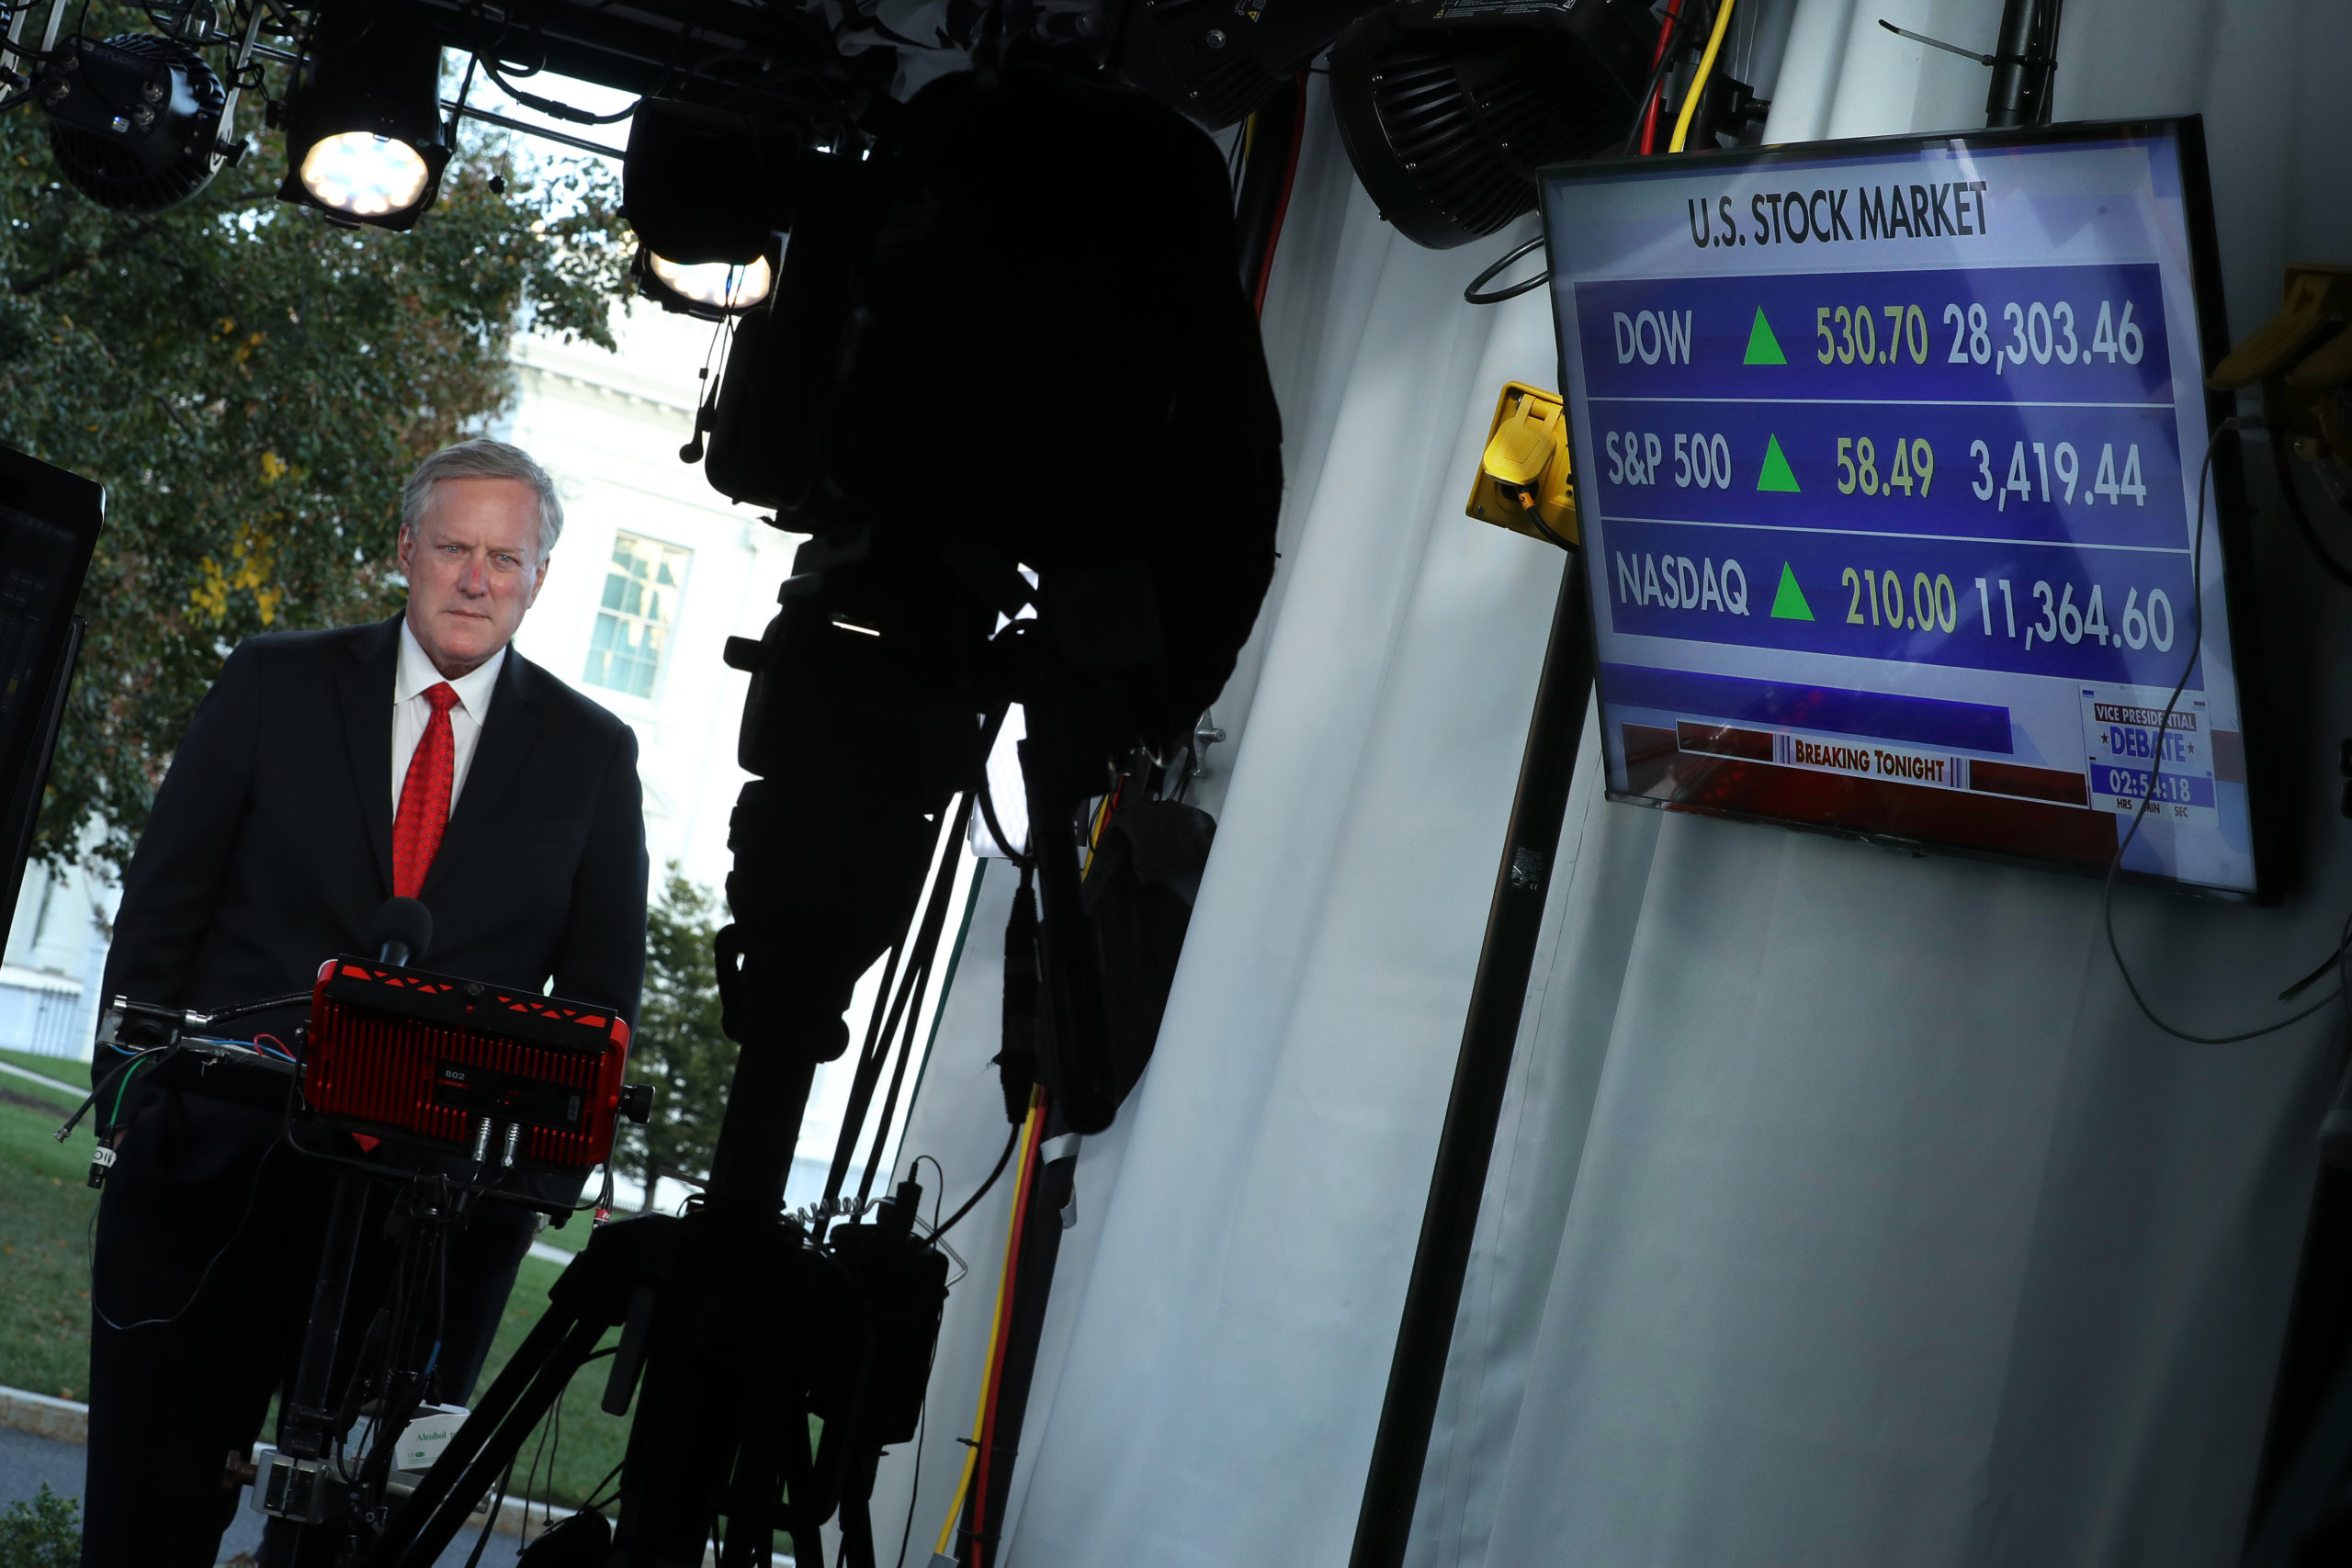 White House Chief of Staff Mark Meadows is interviewed by Fox News outside the White House October 07, 2020 in Washington, D.C. (Chip Somodevilla/Getty Images)